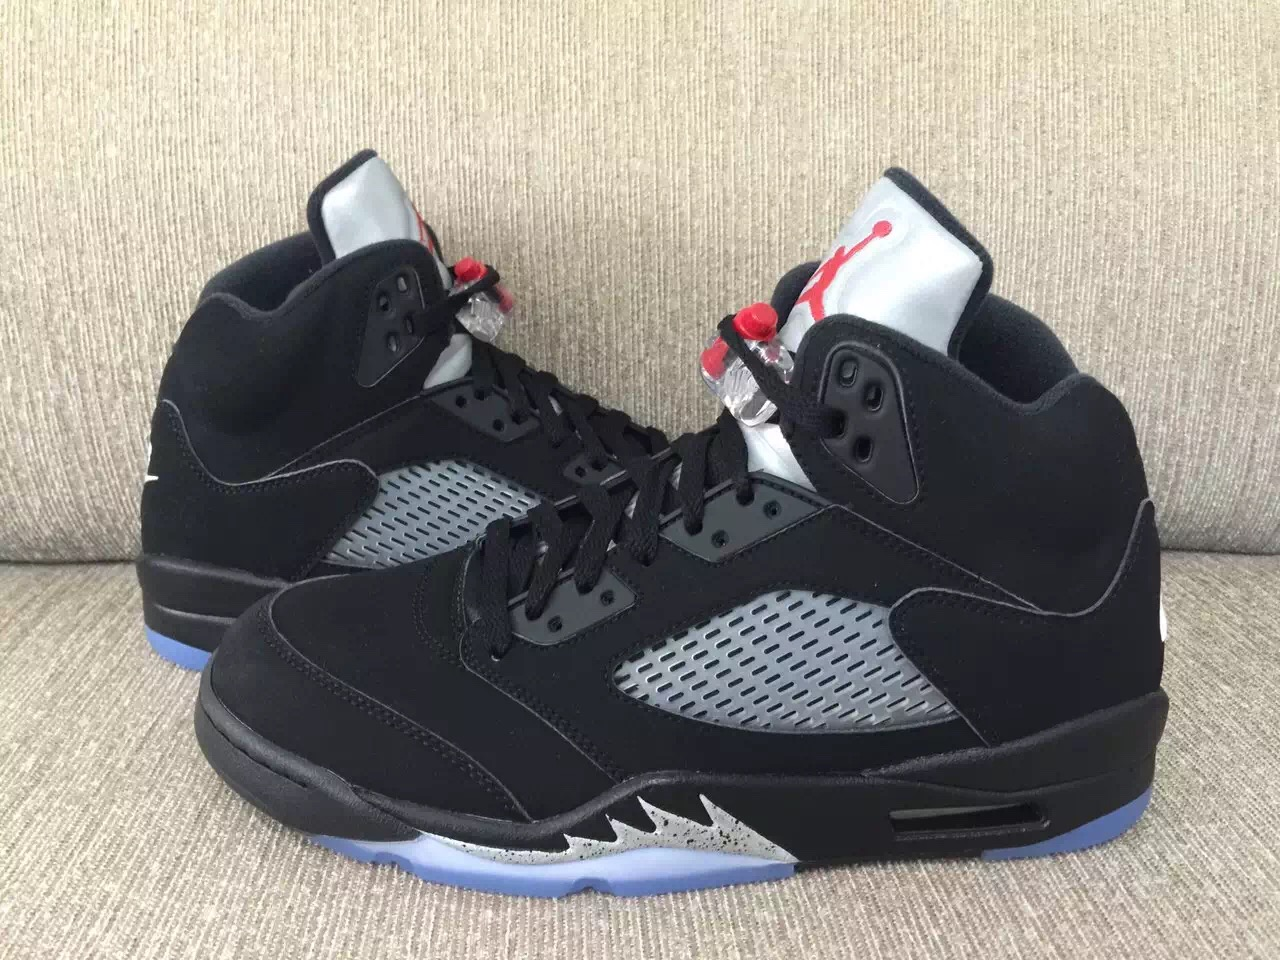 2016 Air Jordan 5 OG Black Metallic